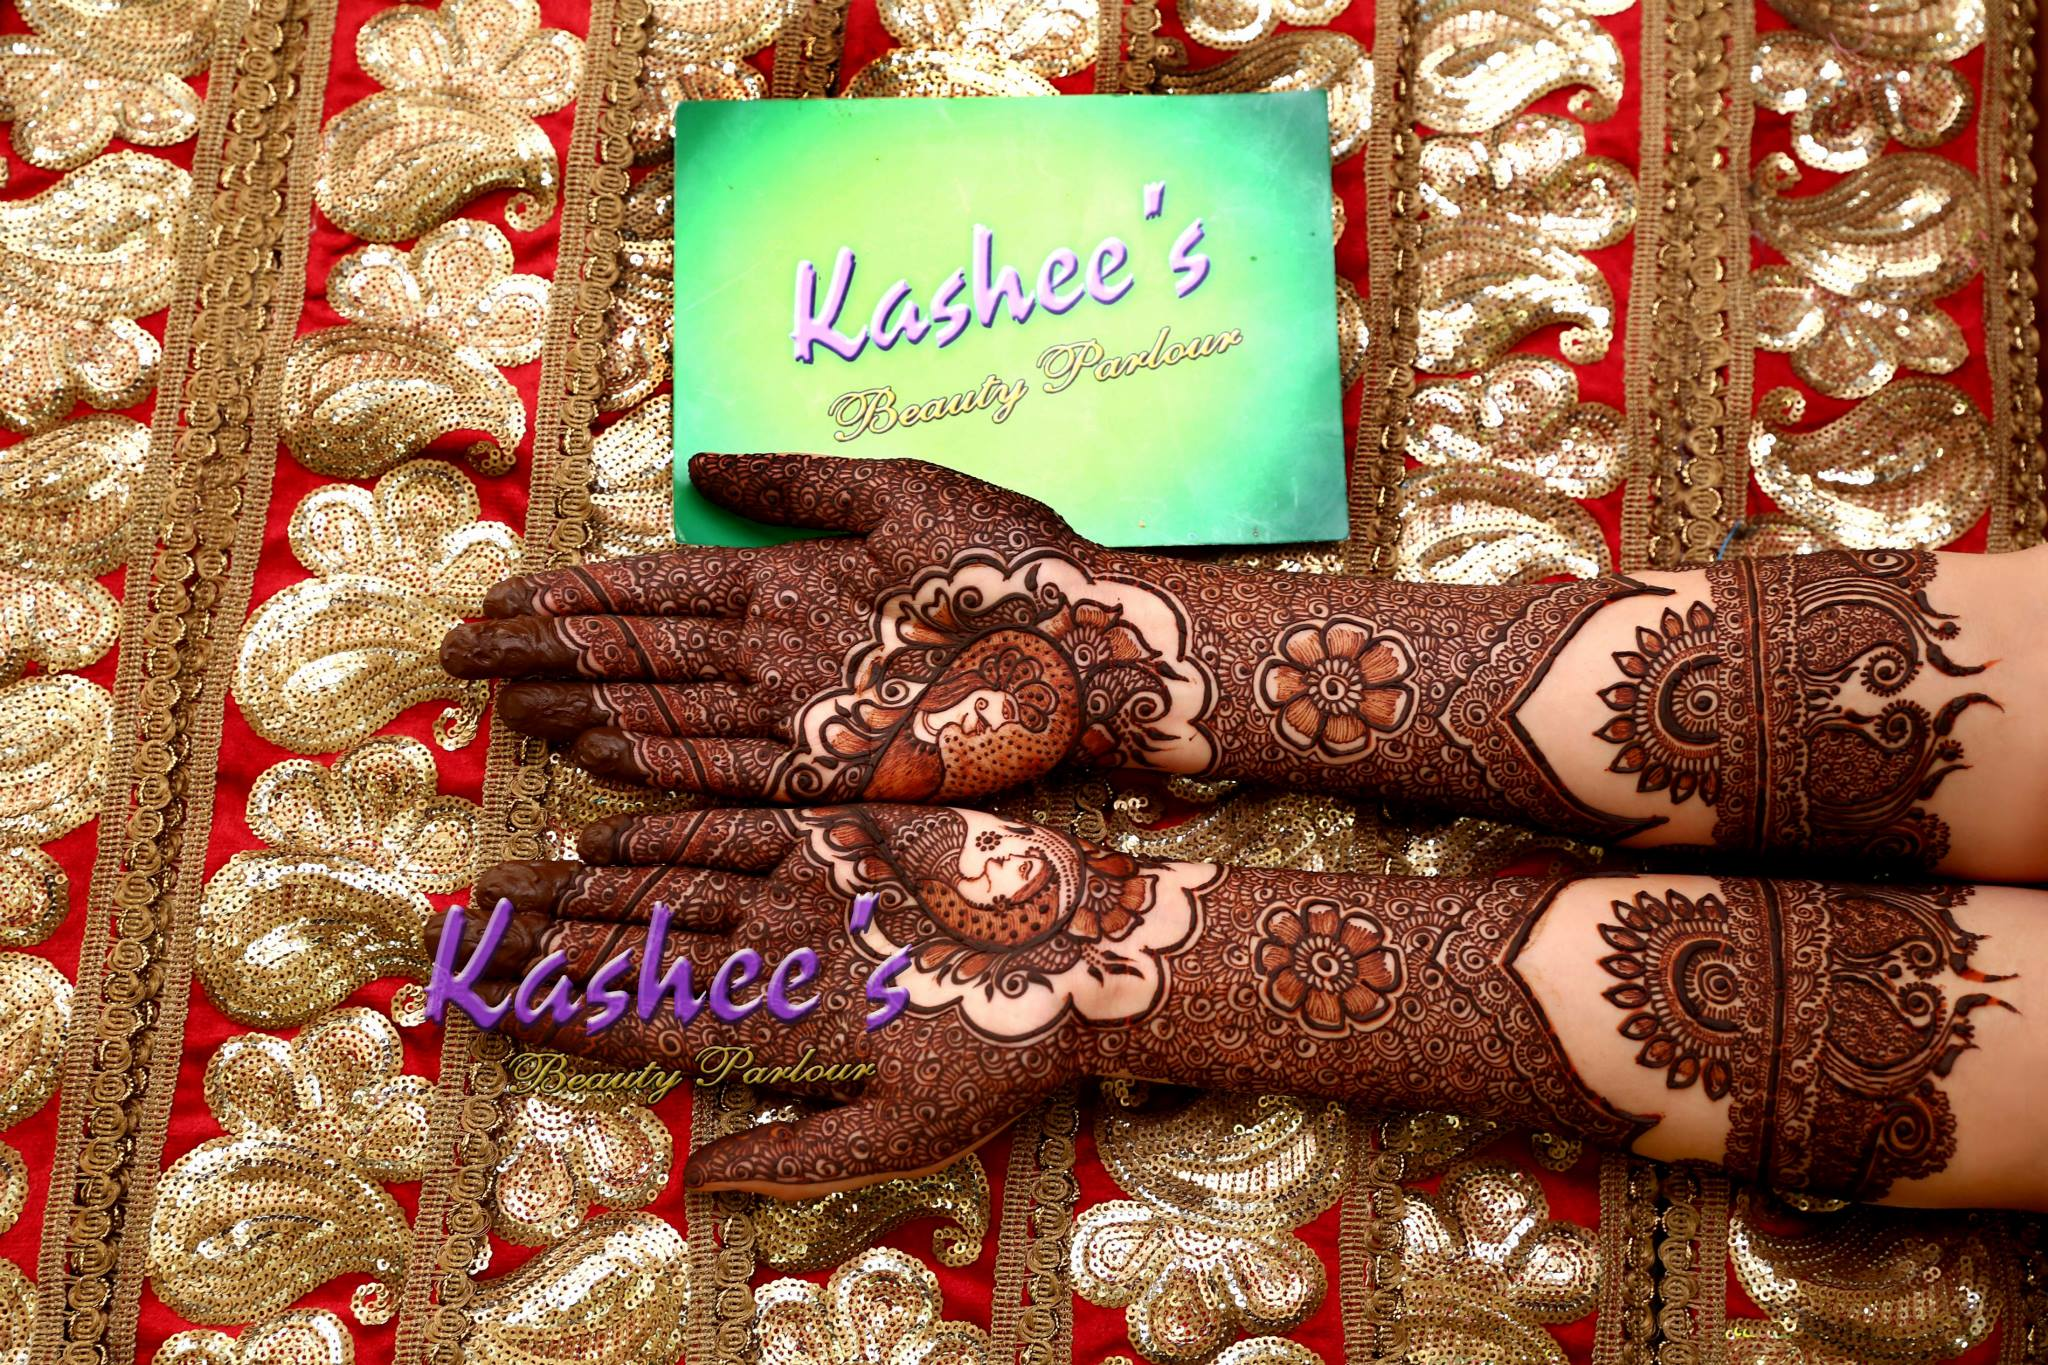 Mehndi Design For Bridal Collection : Stylish mehndi designs collection  by kashee artist salon